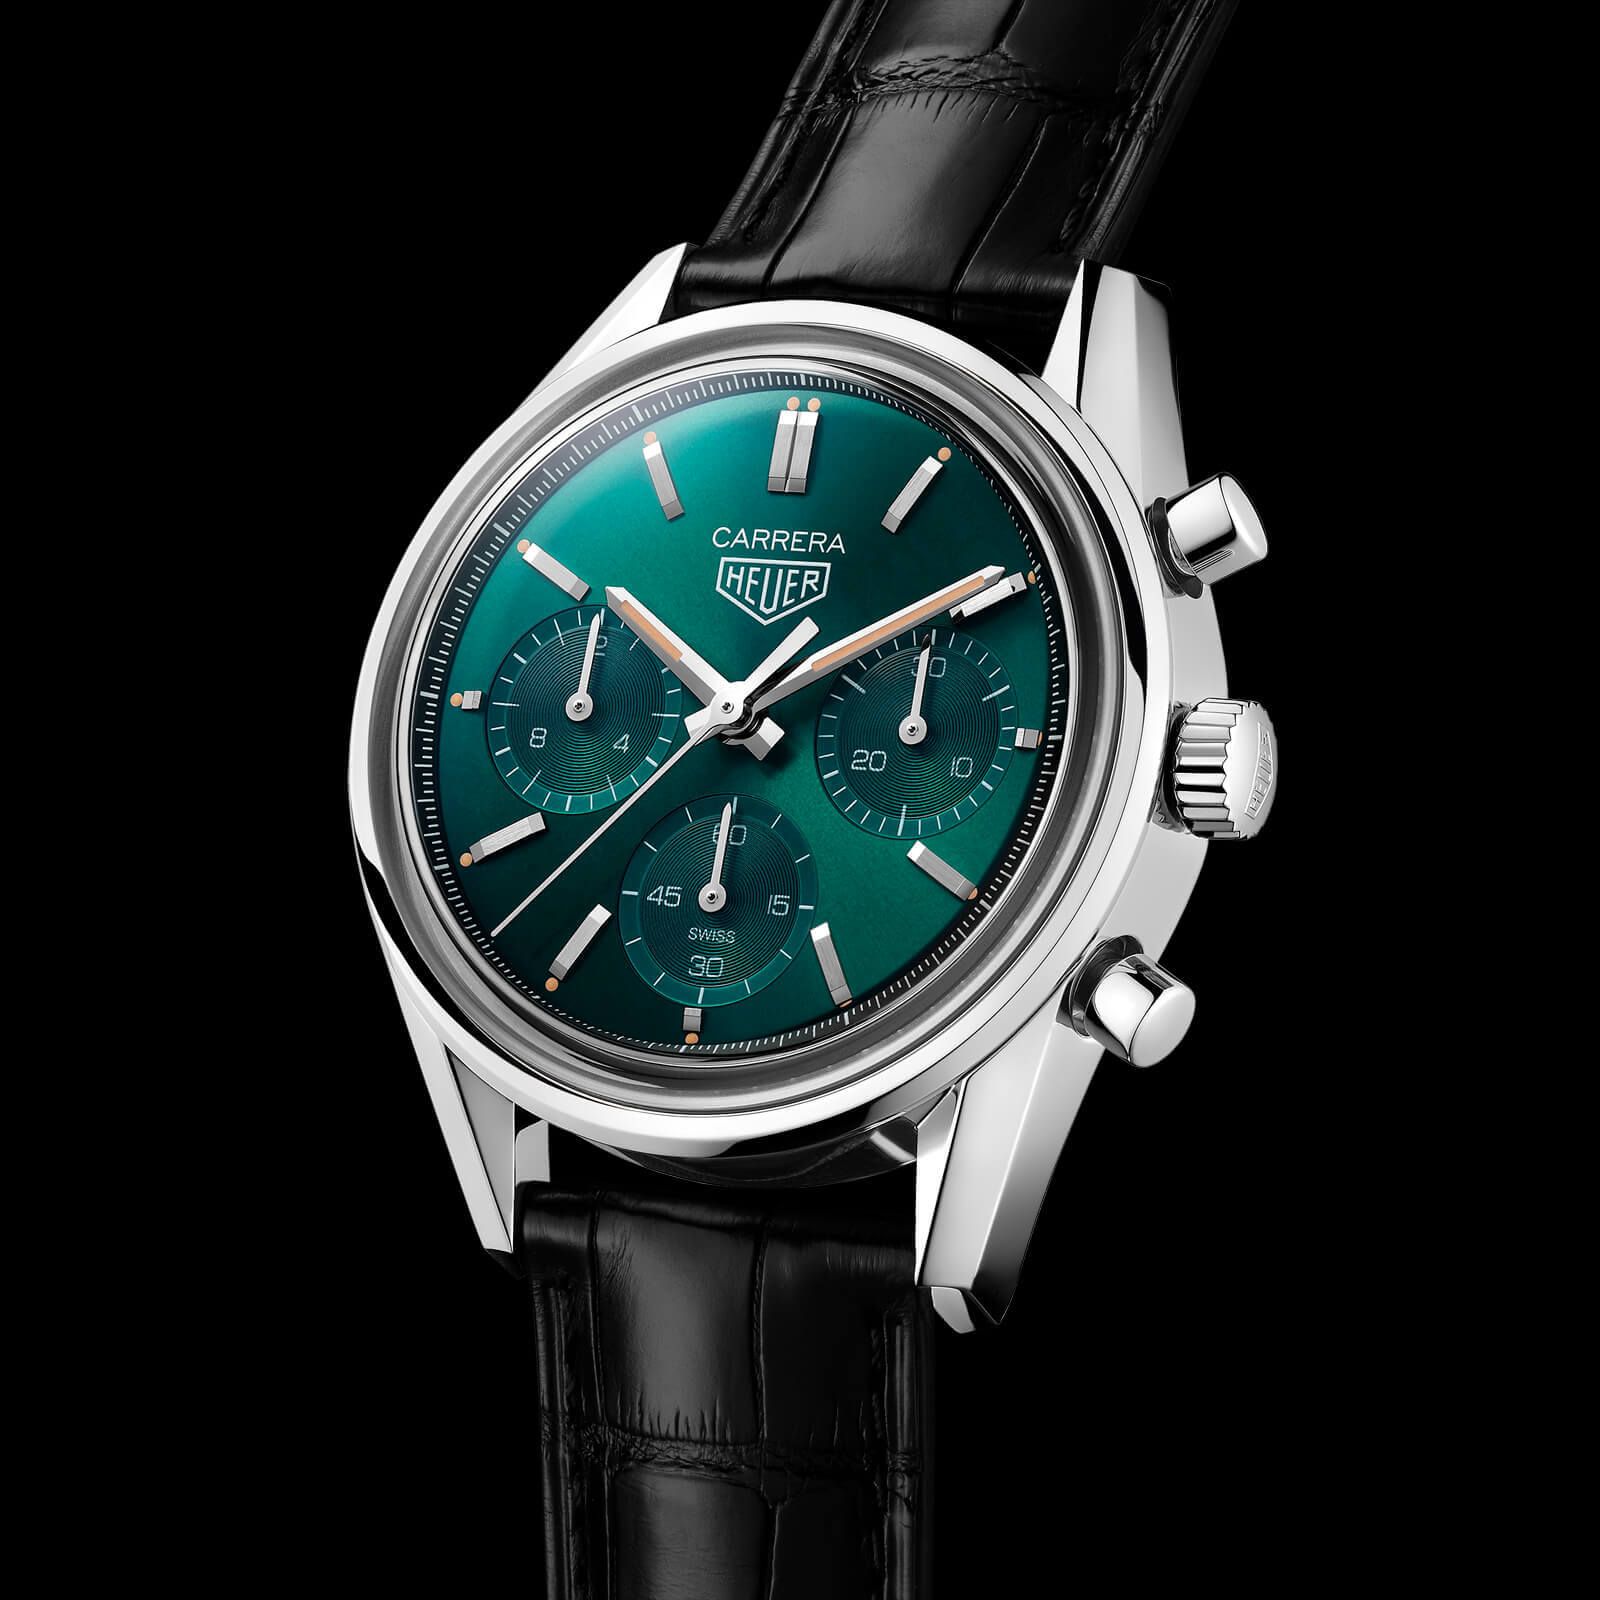 TAG Heuer Carrera Green Dial Special Edition WATCH REVIEW